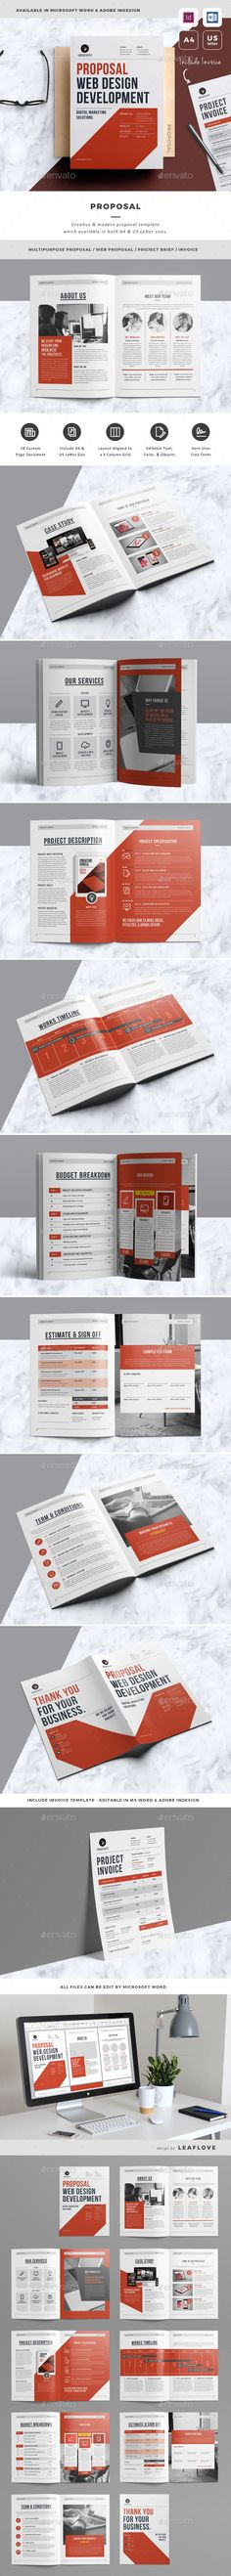 9 best Business Proposal Ideas images on Pinterest Graph design - Sample Contract Proposal Template